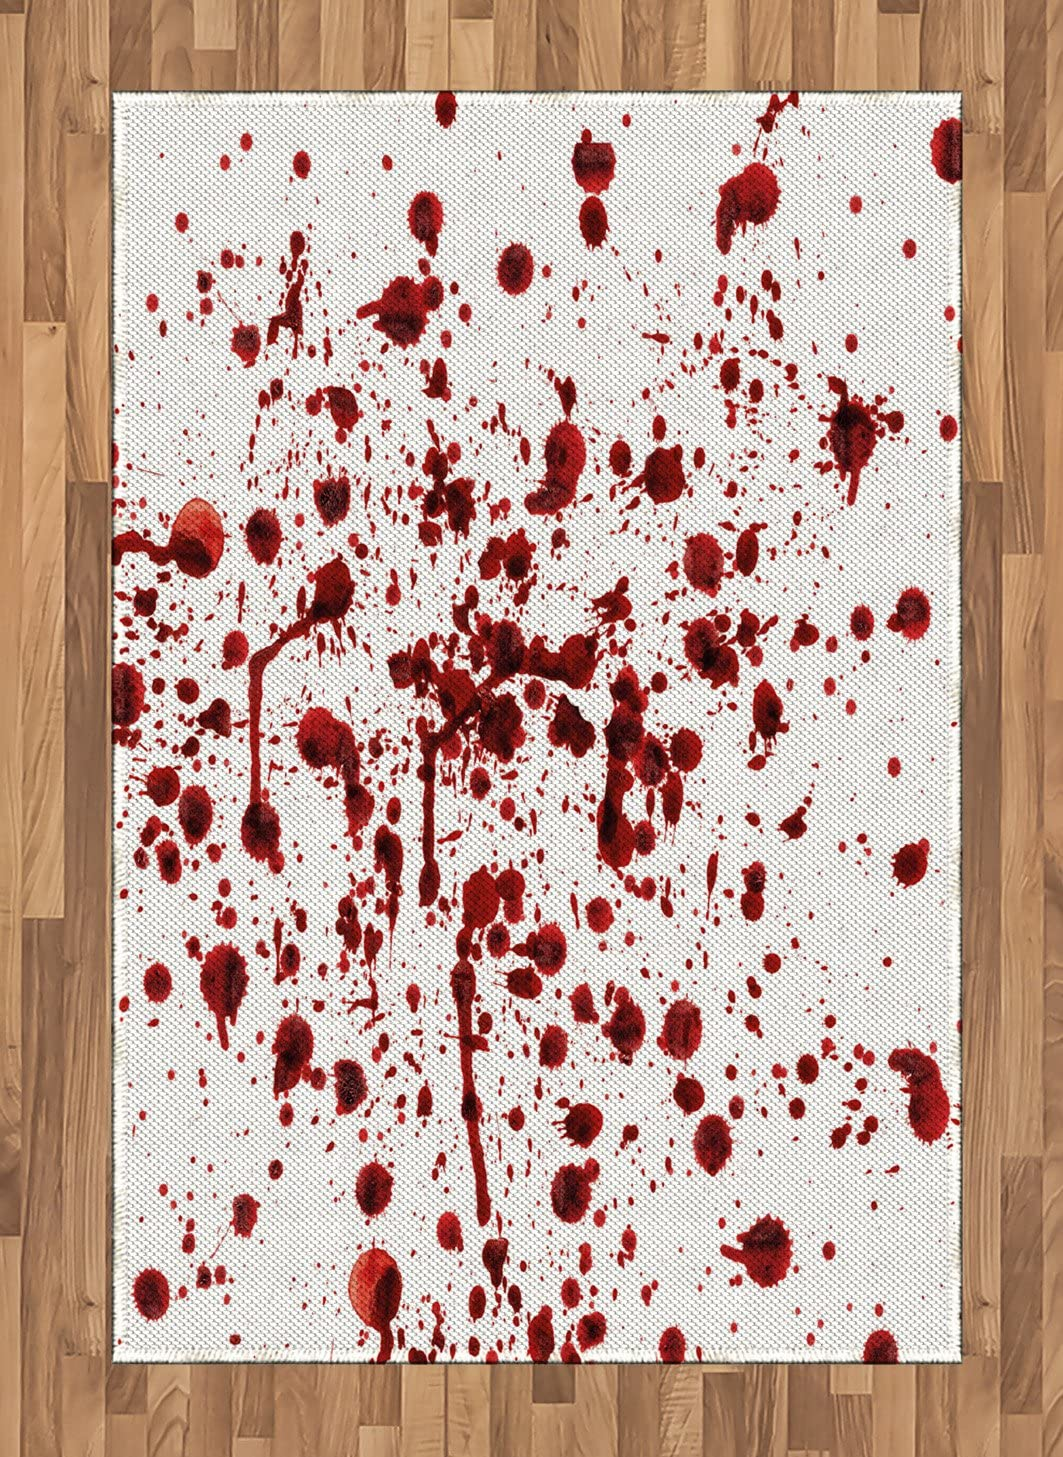 In stock Ambesonne Horror Area Rug Splashes Ranking TOP1 Blood of Grunge Bloods Style